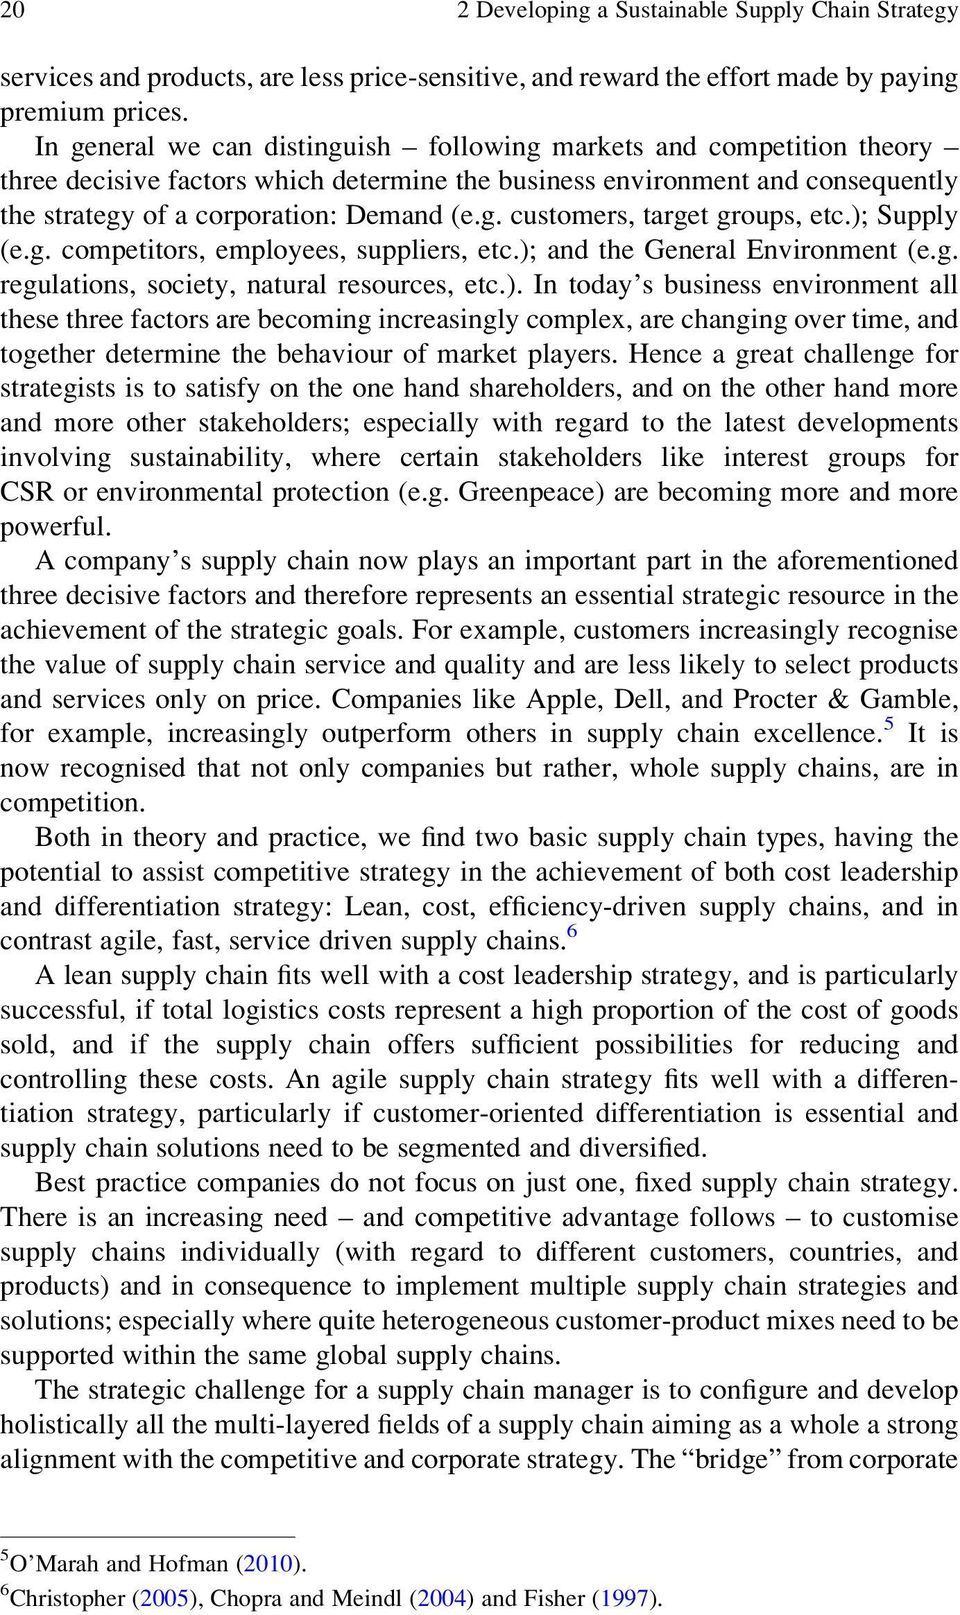 ); Suppy (e.g. competitors, empoyees, suppiers, etc.); and the Genera Environment (e.g. reguations, society, natura resources, etc.). In today s business environment a these three factors are becoming increasingy compex, are changing over time, and together determine the behaviour of market payers.